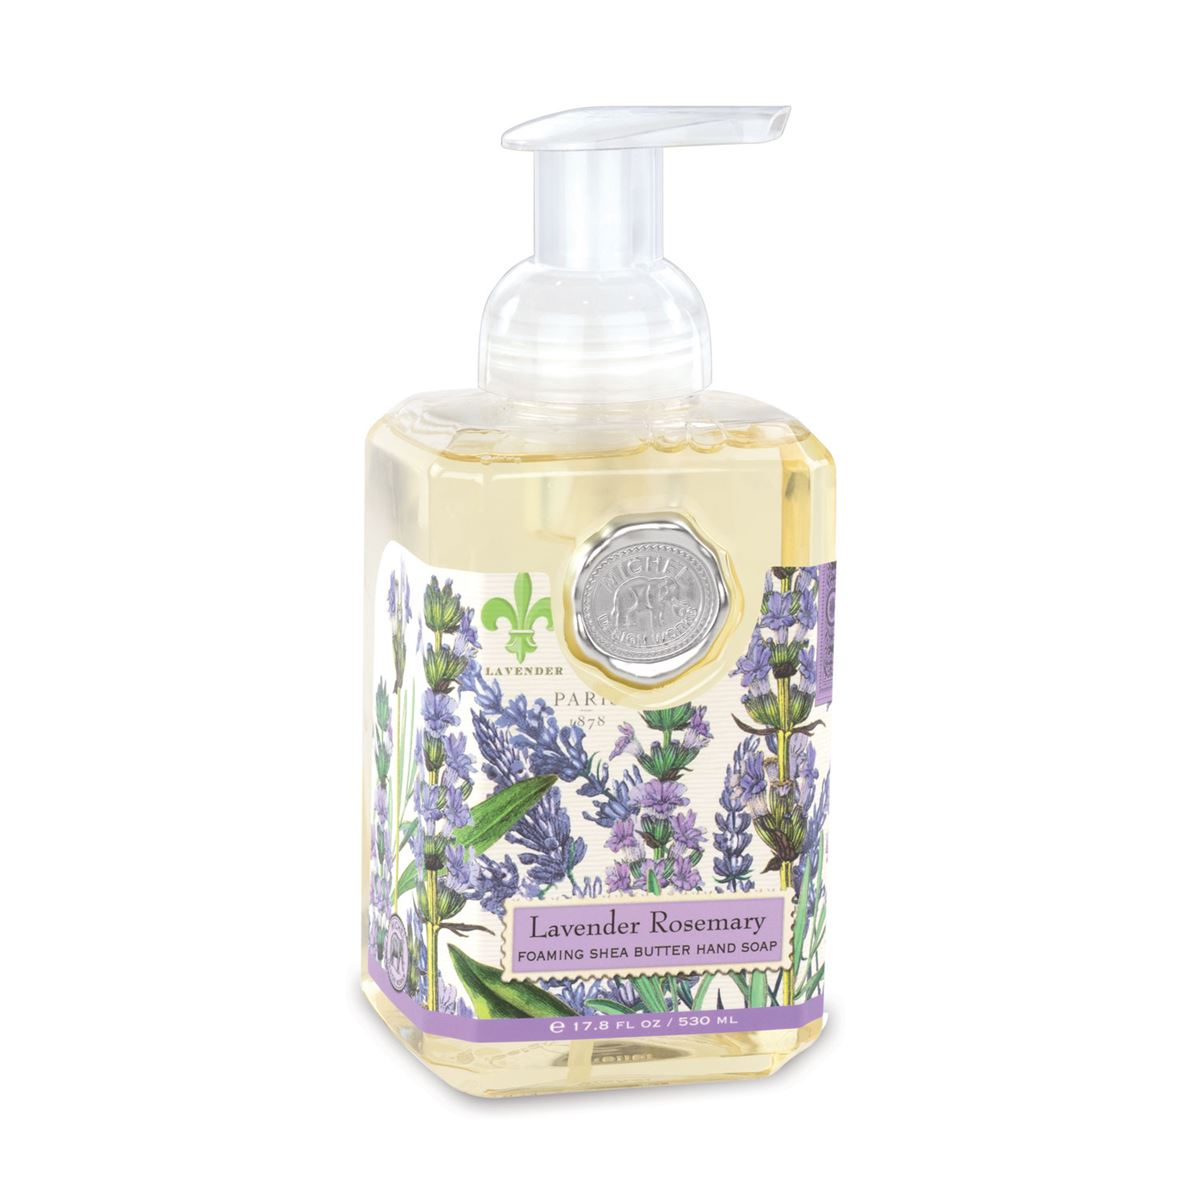 Lavender Rosemary features the distinct scents of lavender and rosemary with a hint of eucalyptus. This generously sized foaming hand soap contains luxurious shea butter and aloe vera for gentle cleansing and moisturizing.